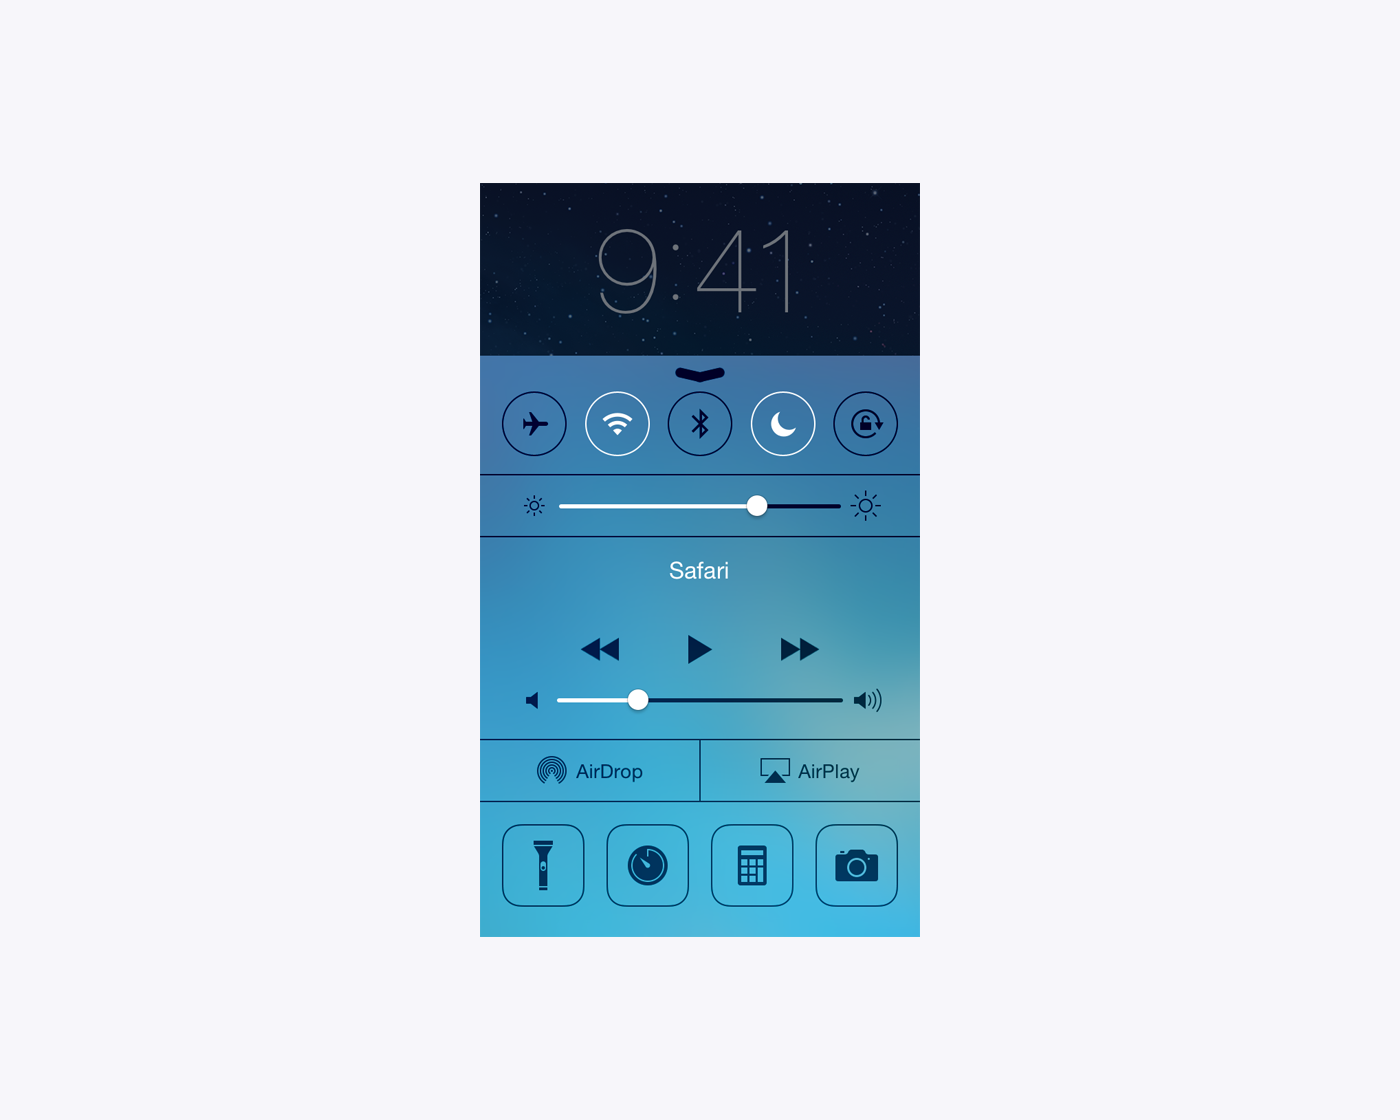 From Control Center you can turn on Do Not Disturb by tapping the moon icon.